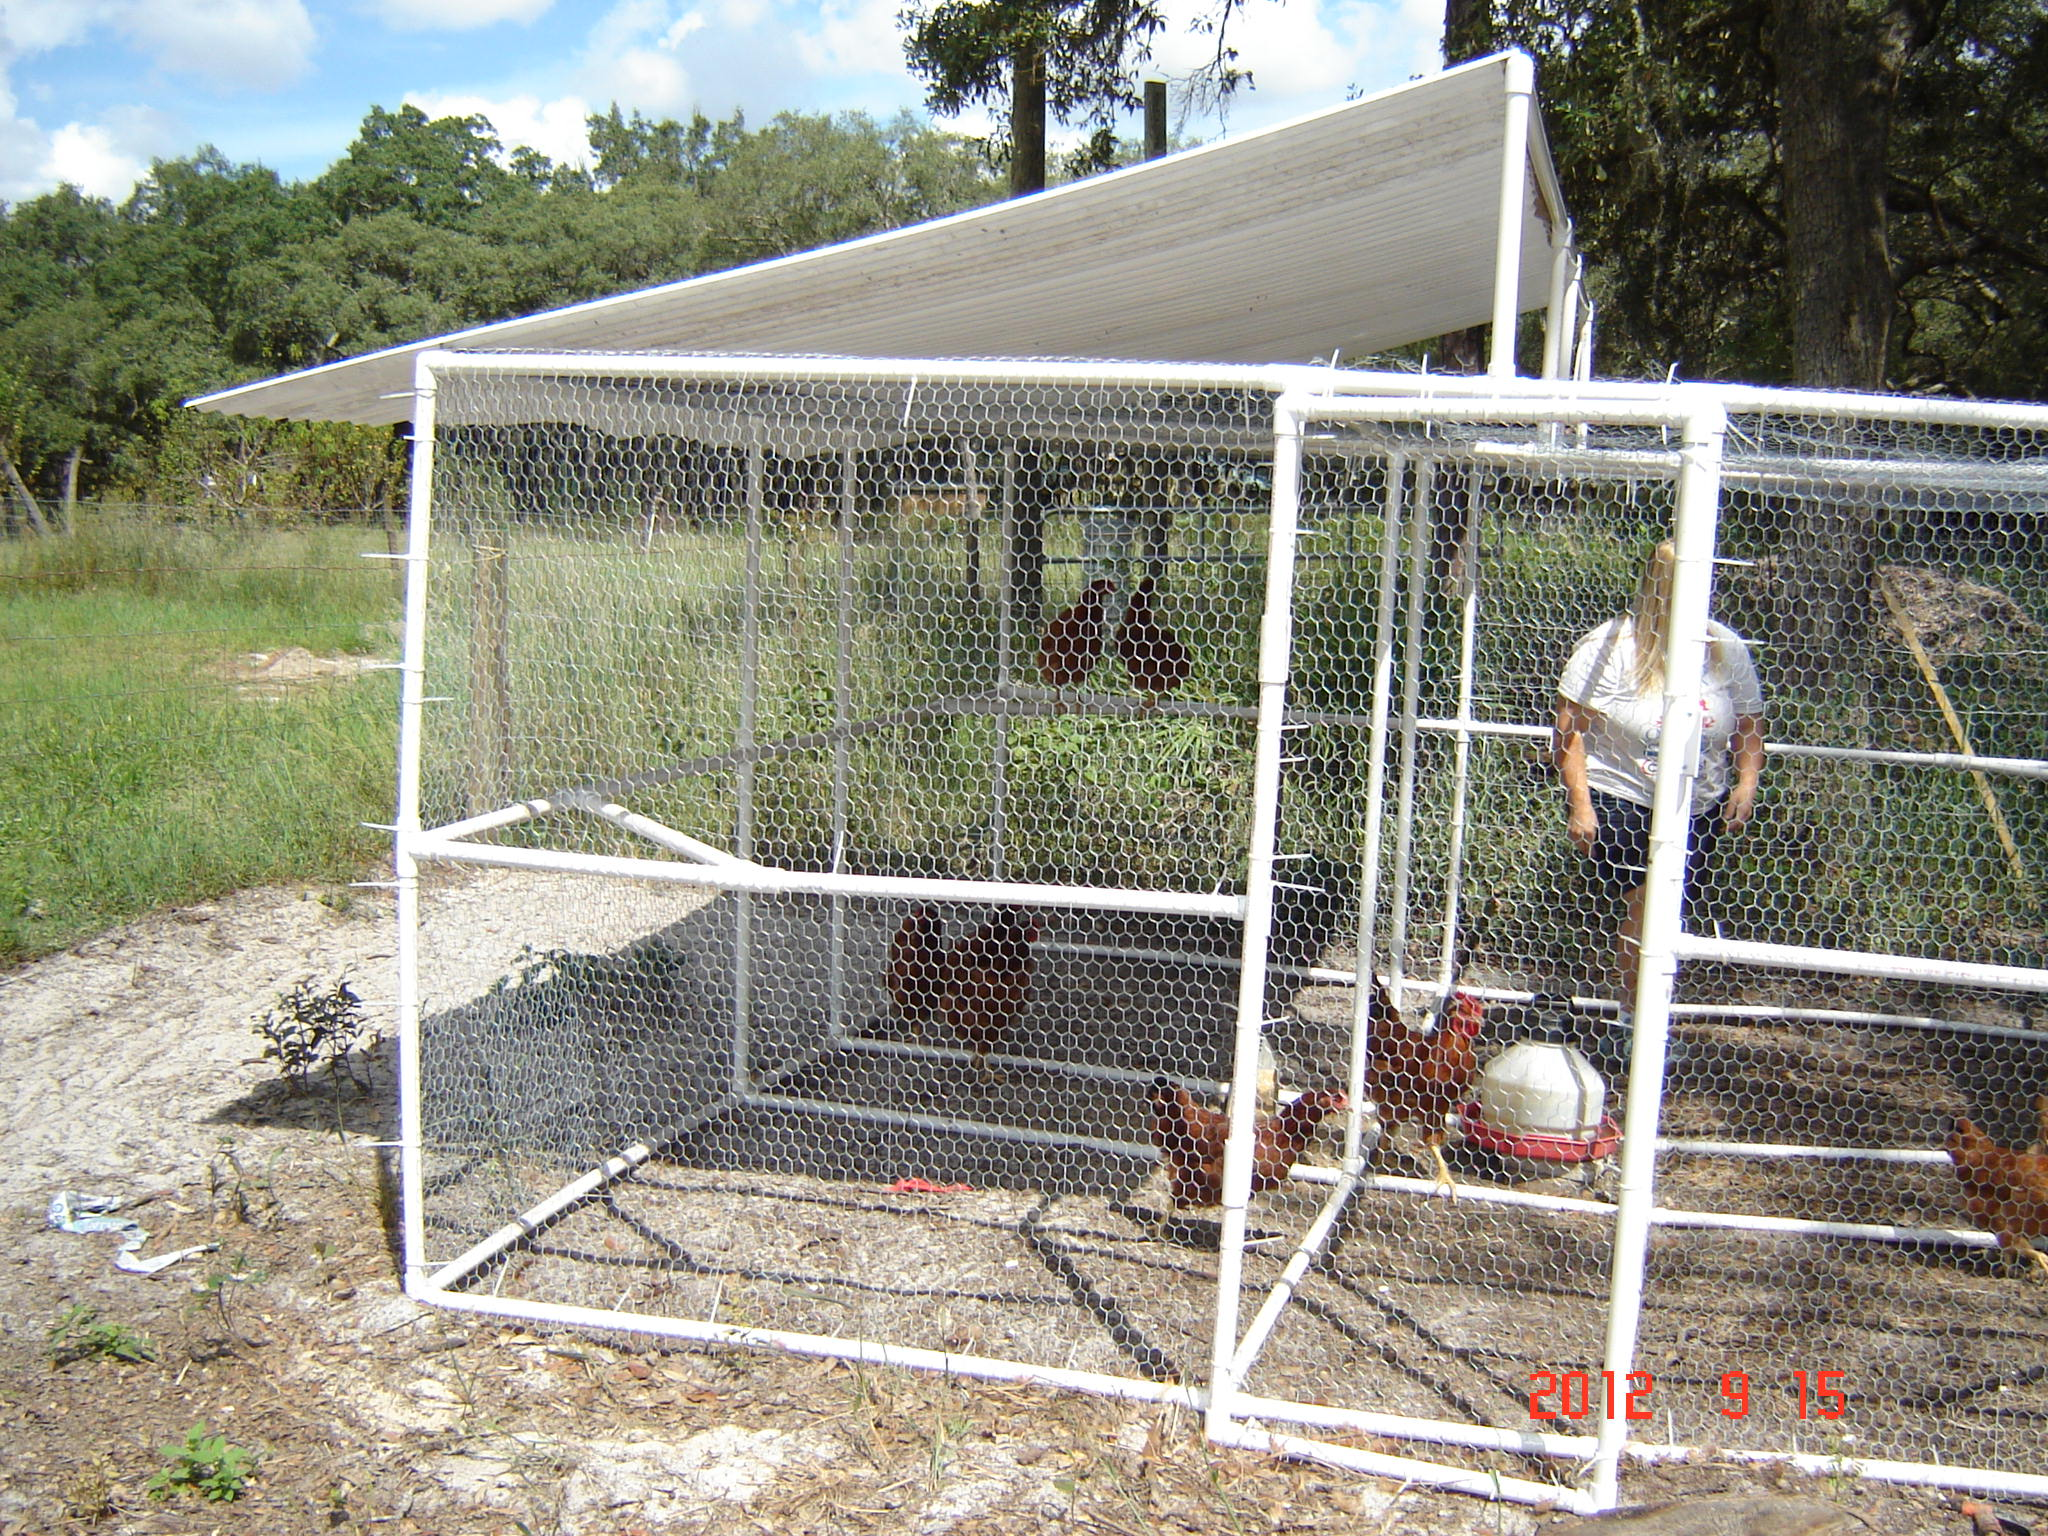 Walipini A Smart And Simple Underground Greenhouse For 300 Or Less besides Kiln2 furthermore Interior Finished Deluxe Lofted Barns as well D I Y Woodstove Heat Exchanger 2450884 moreover Rocket Stove. on portable greenhouse plans